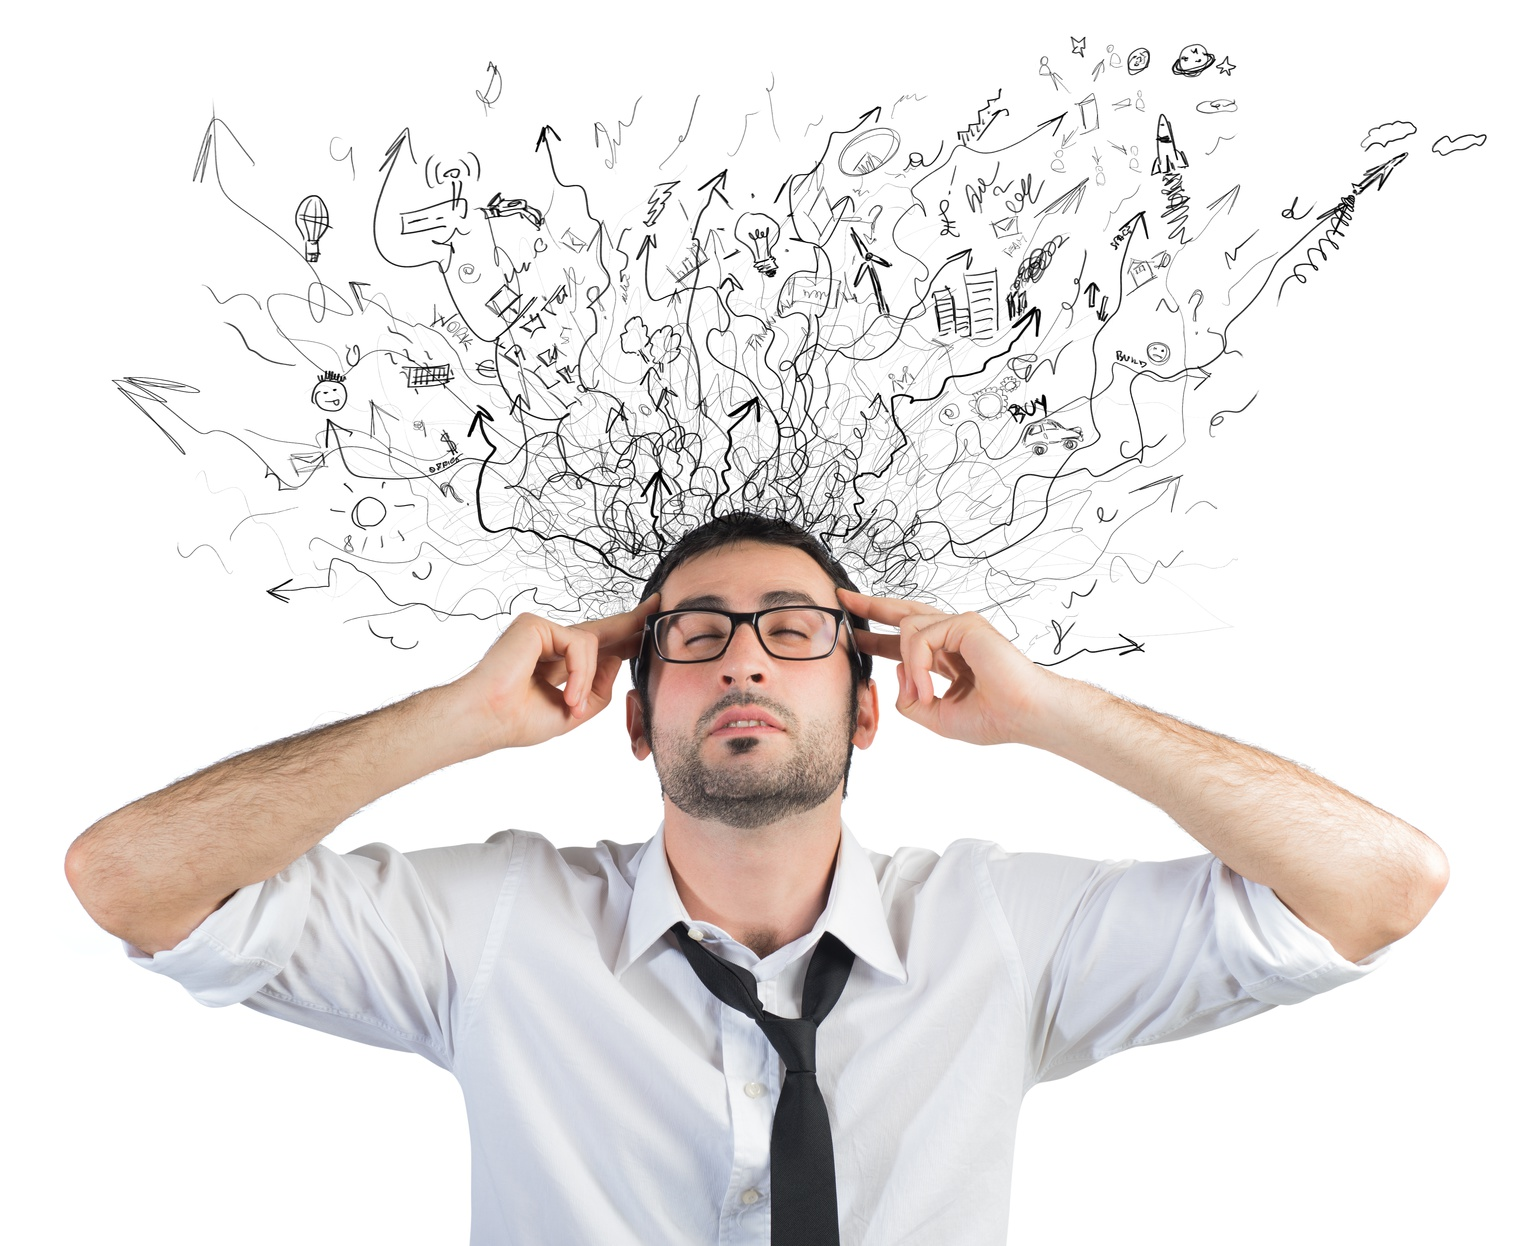 LISTENING IN NOISE, BRAIN STRAIN, AND THE EFFECTS OF HEARING